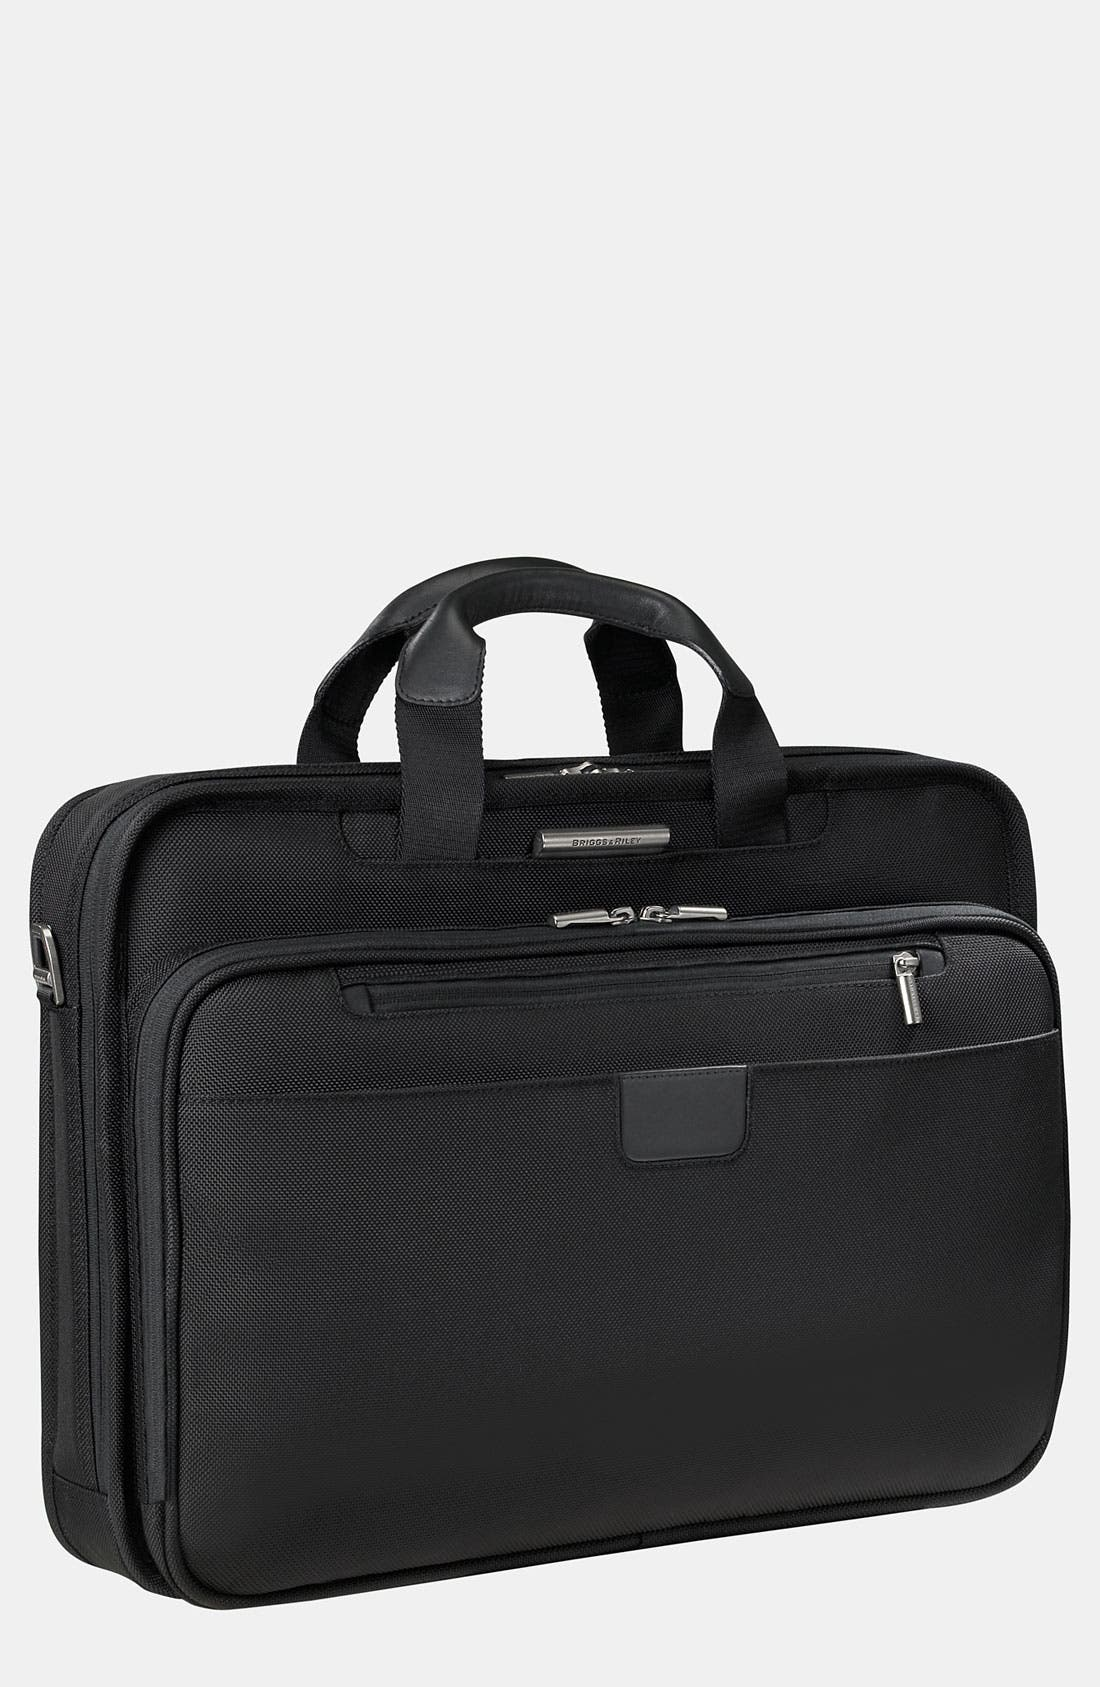 Main Image - Briggs & Riley 'Work - Large Slim' Briefcase